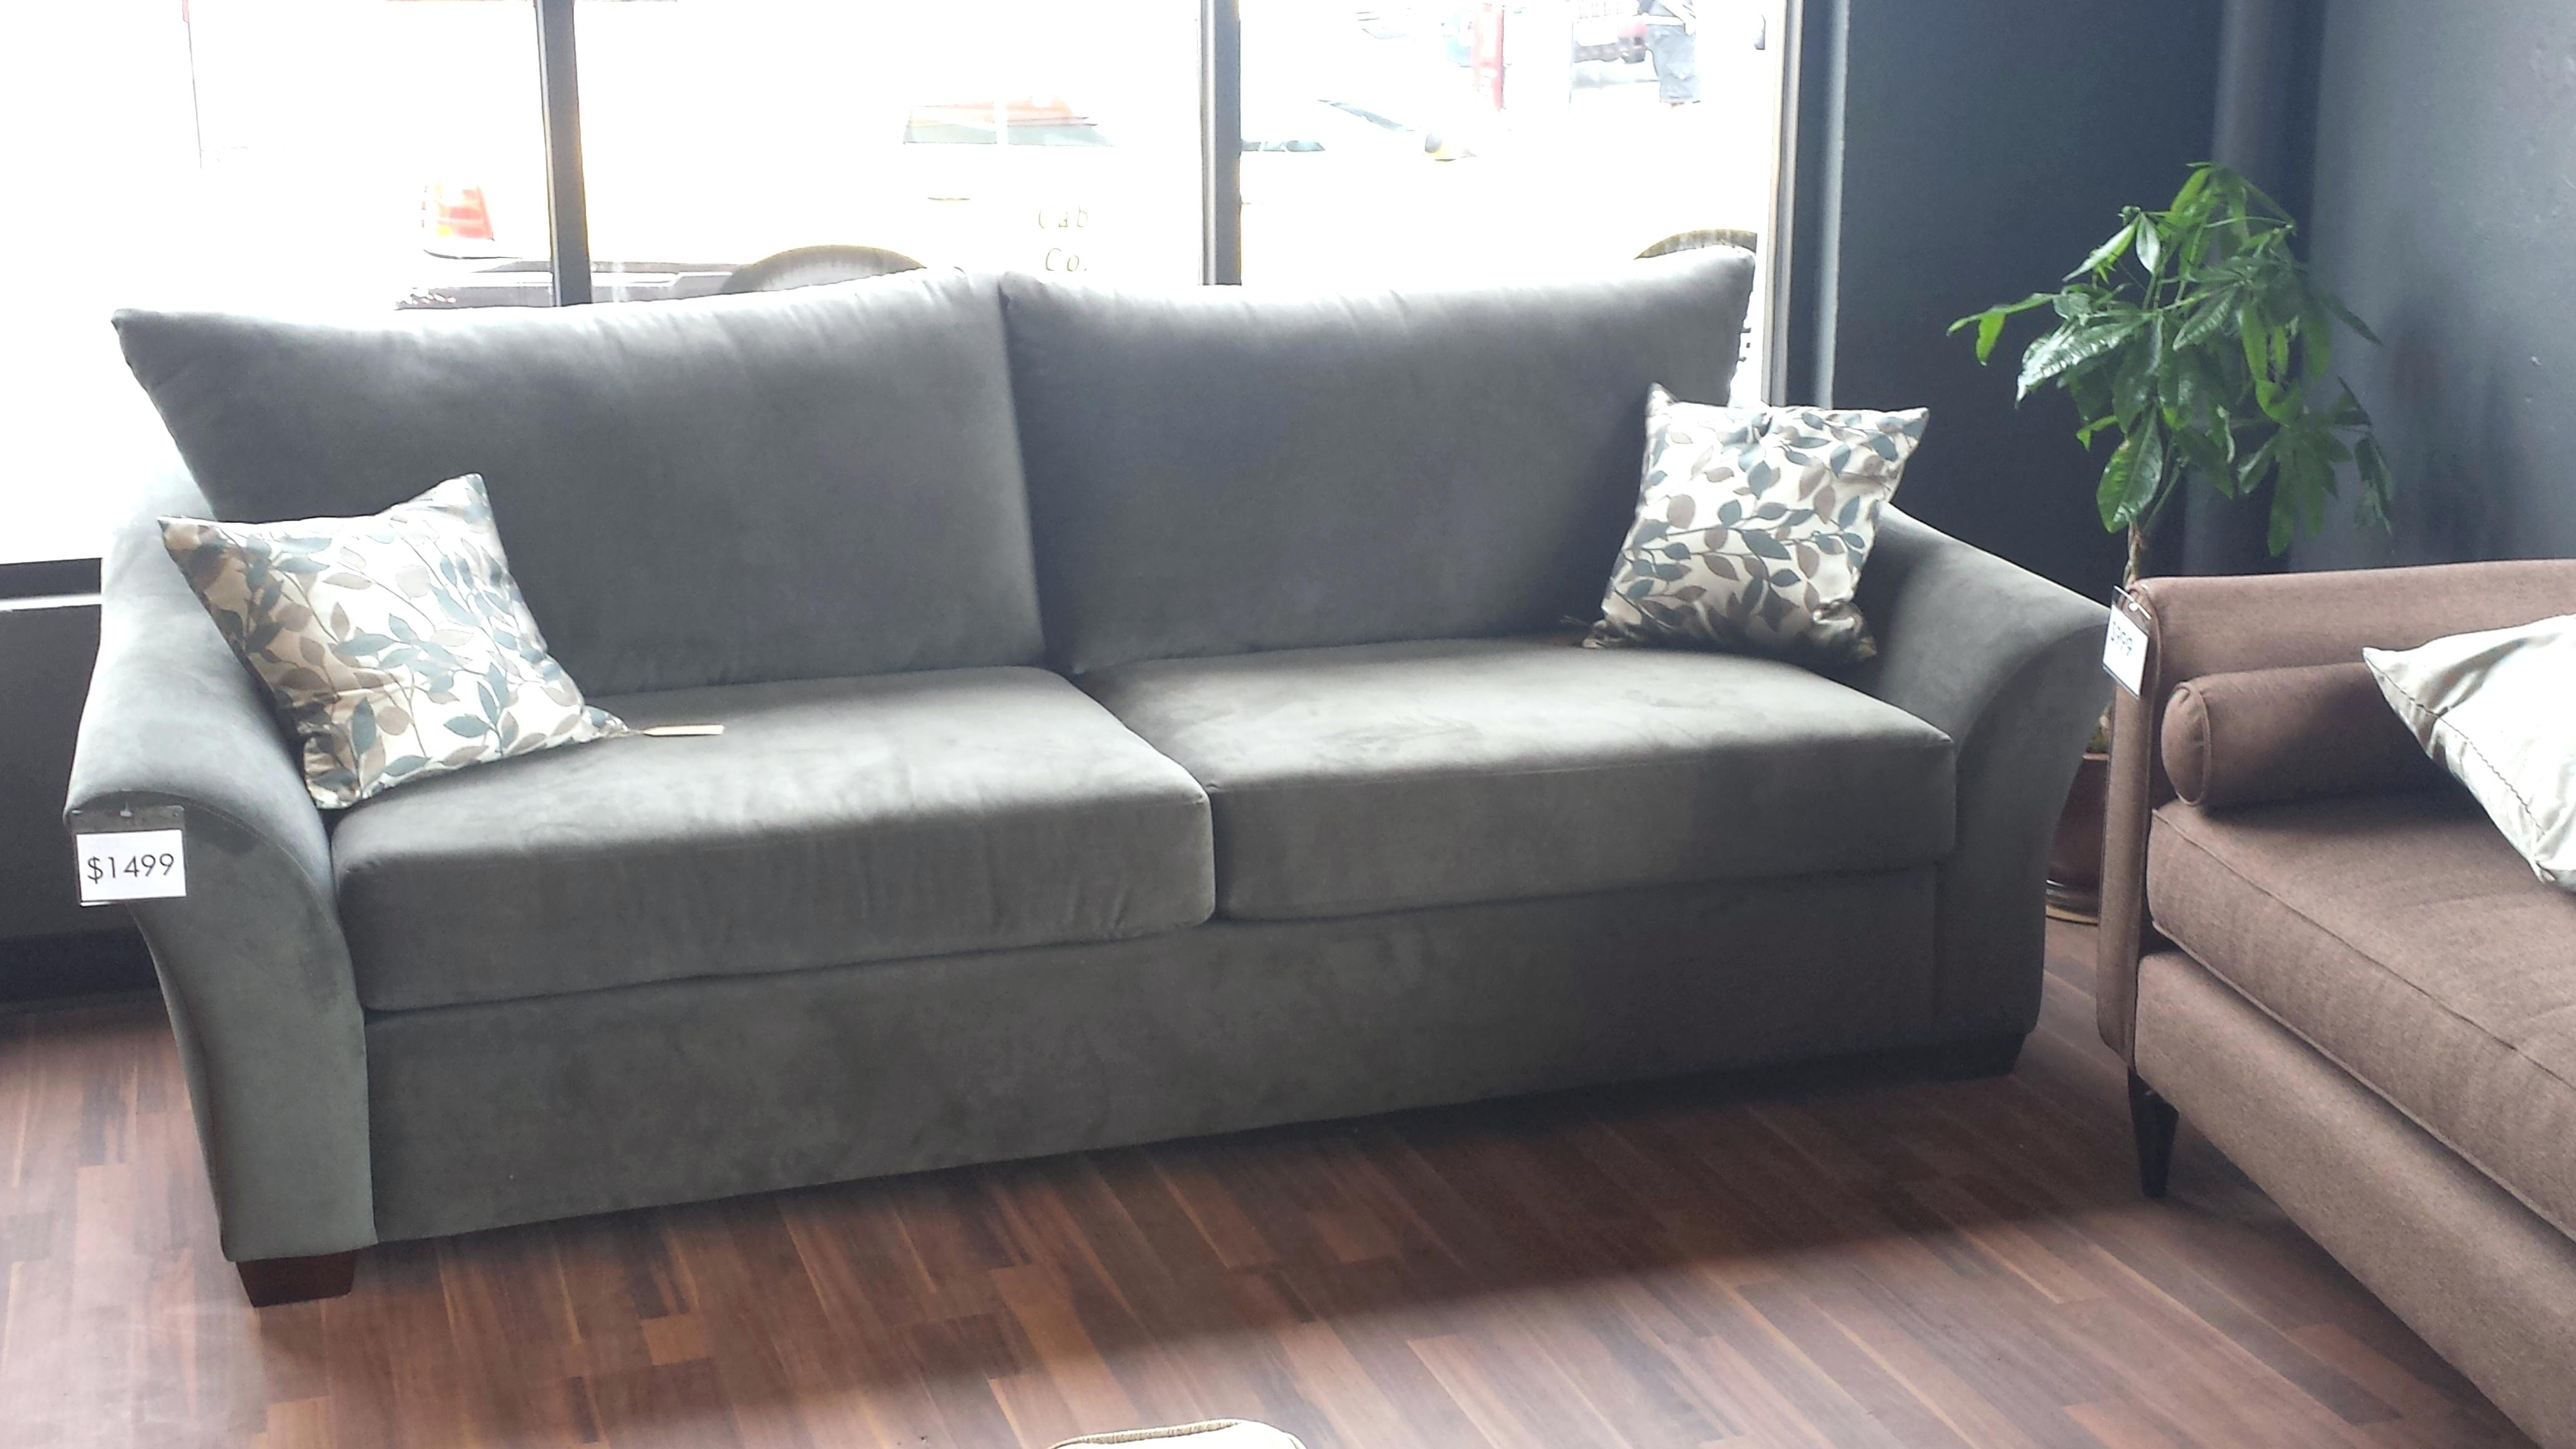 Deep Sectional Couch Sas Sa Sofas For Sale Sofa Canada Cushion For Deep Cushion Sofas (View 5 of 10)